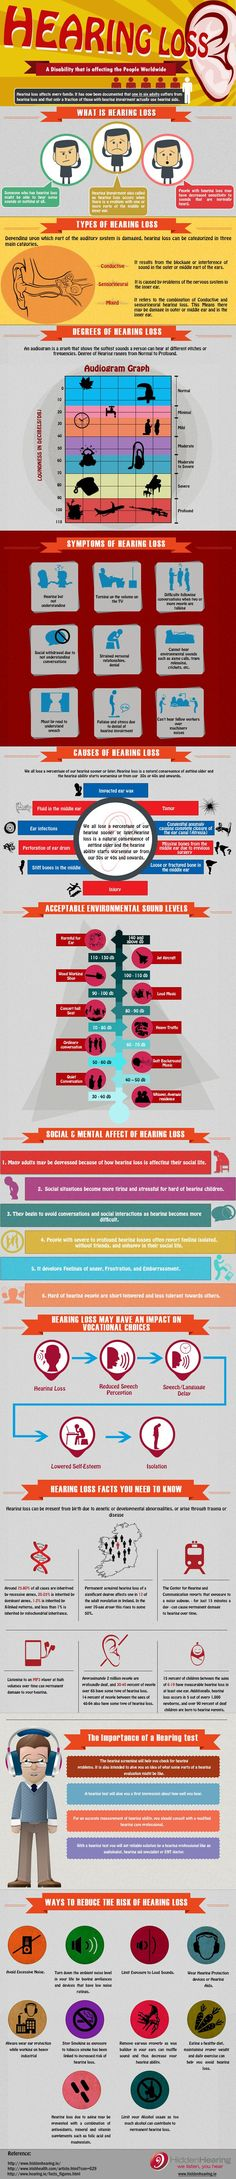 All About Hearing Loss You Need to Know Infographic